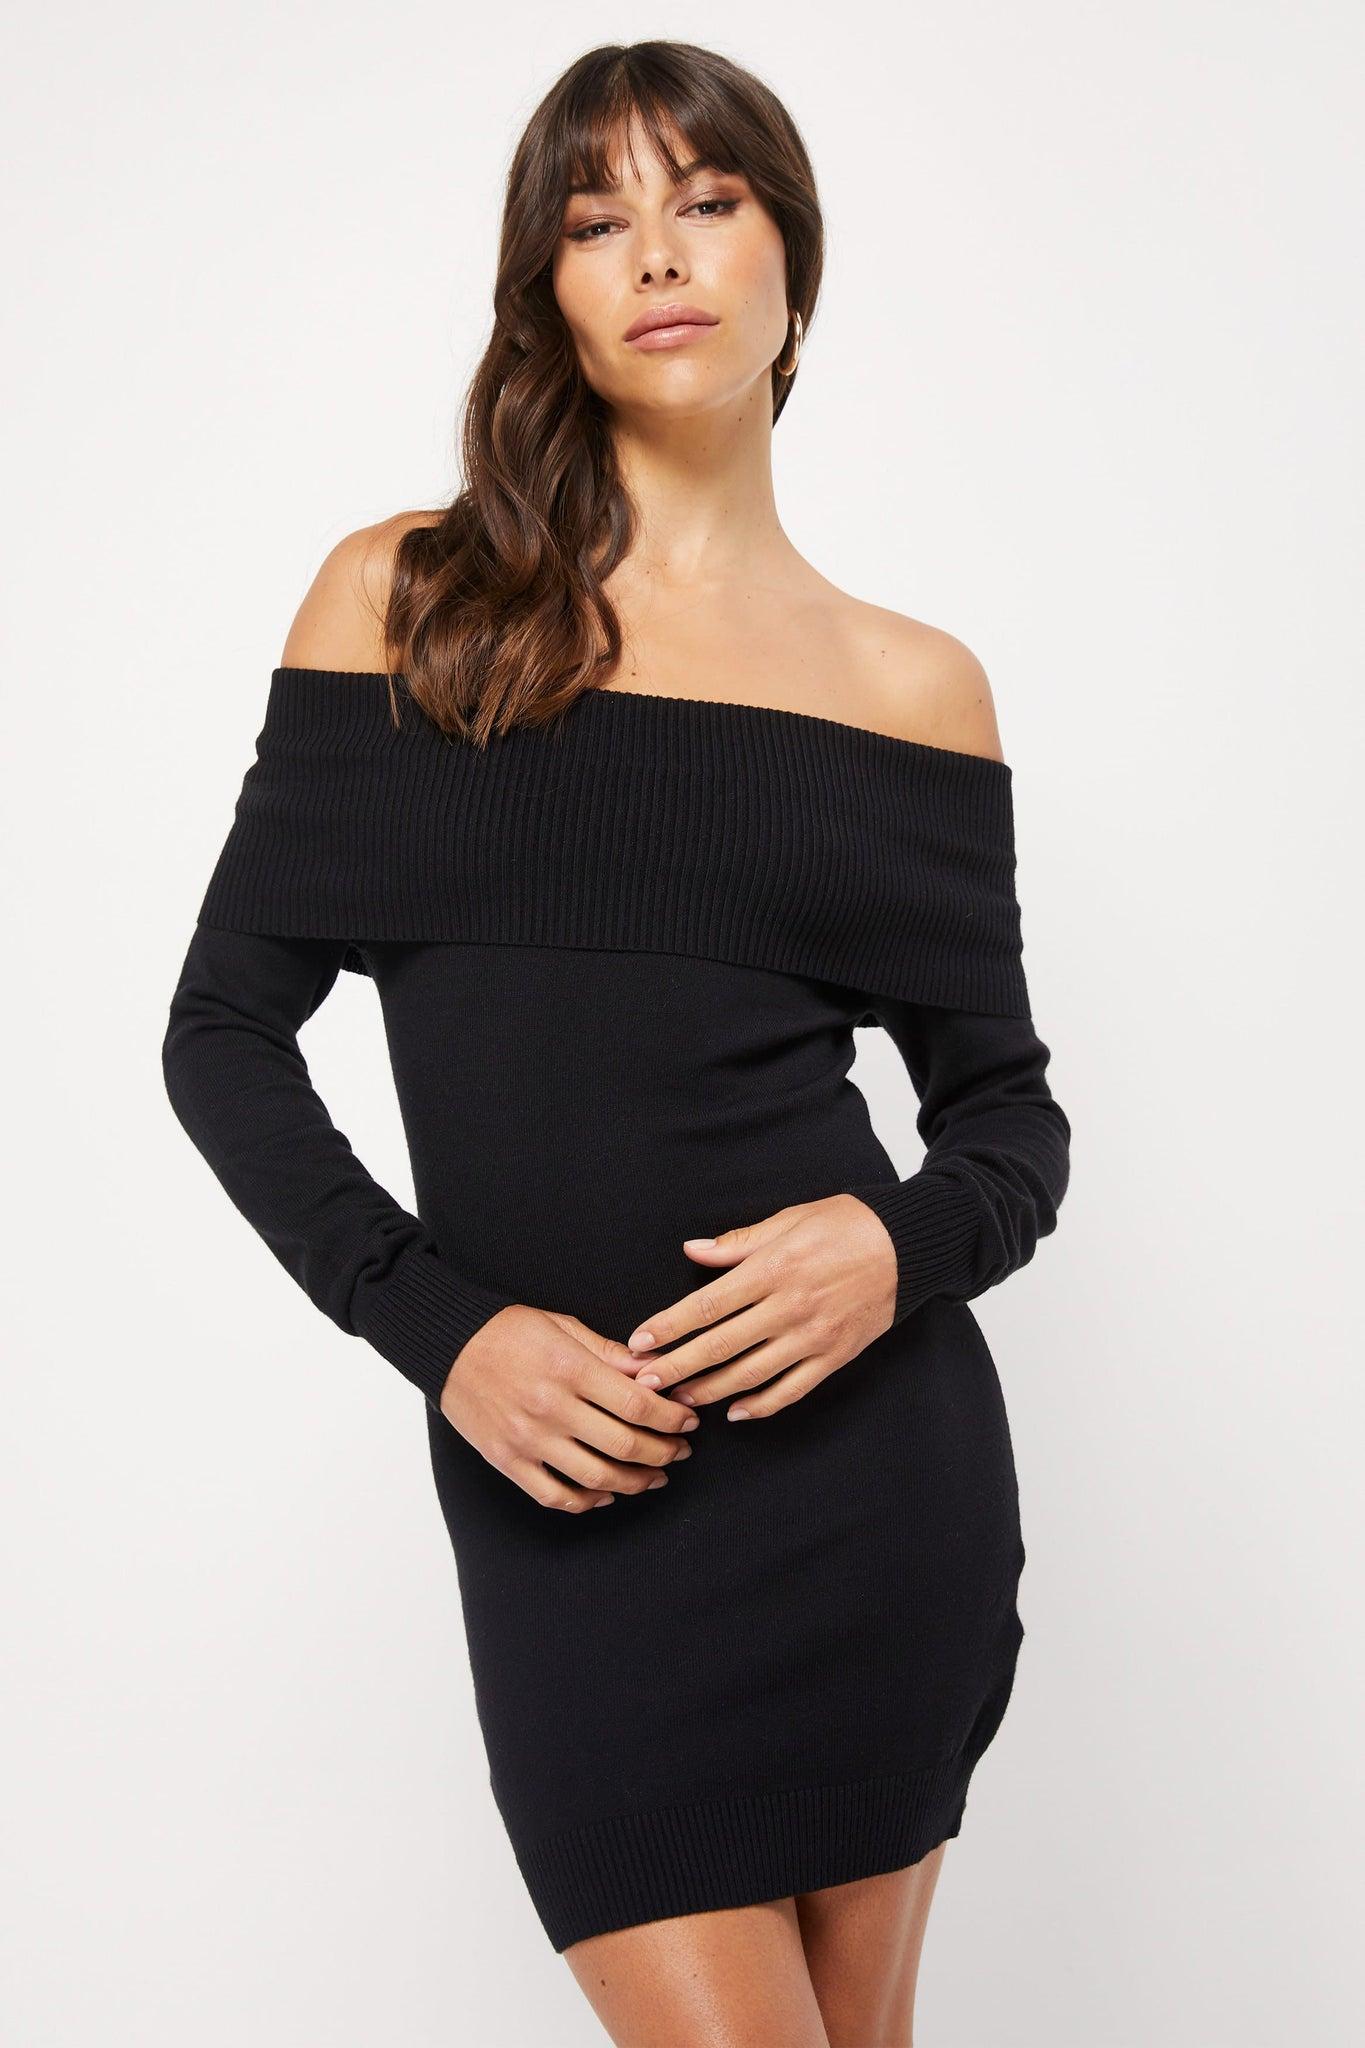 The Venice Knitted Dress